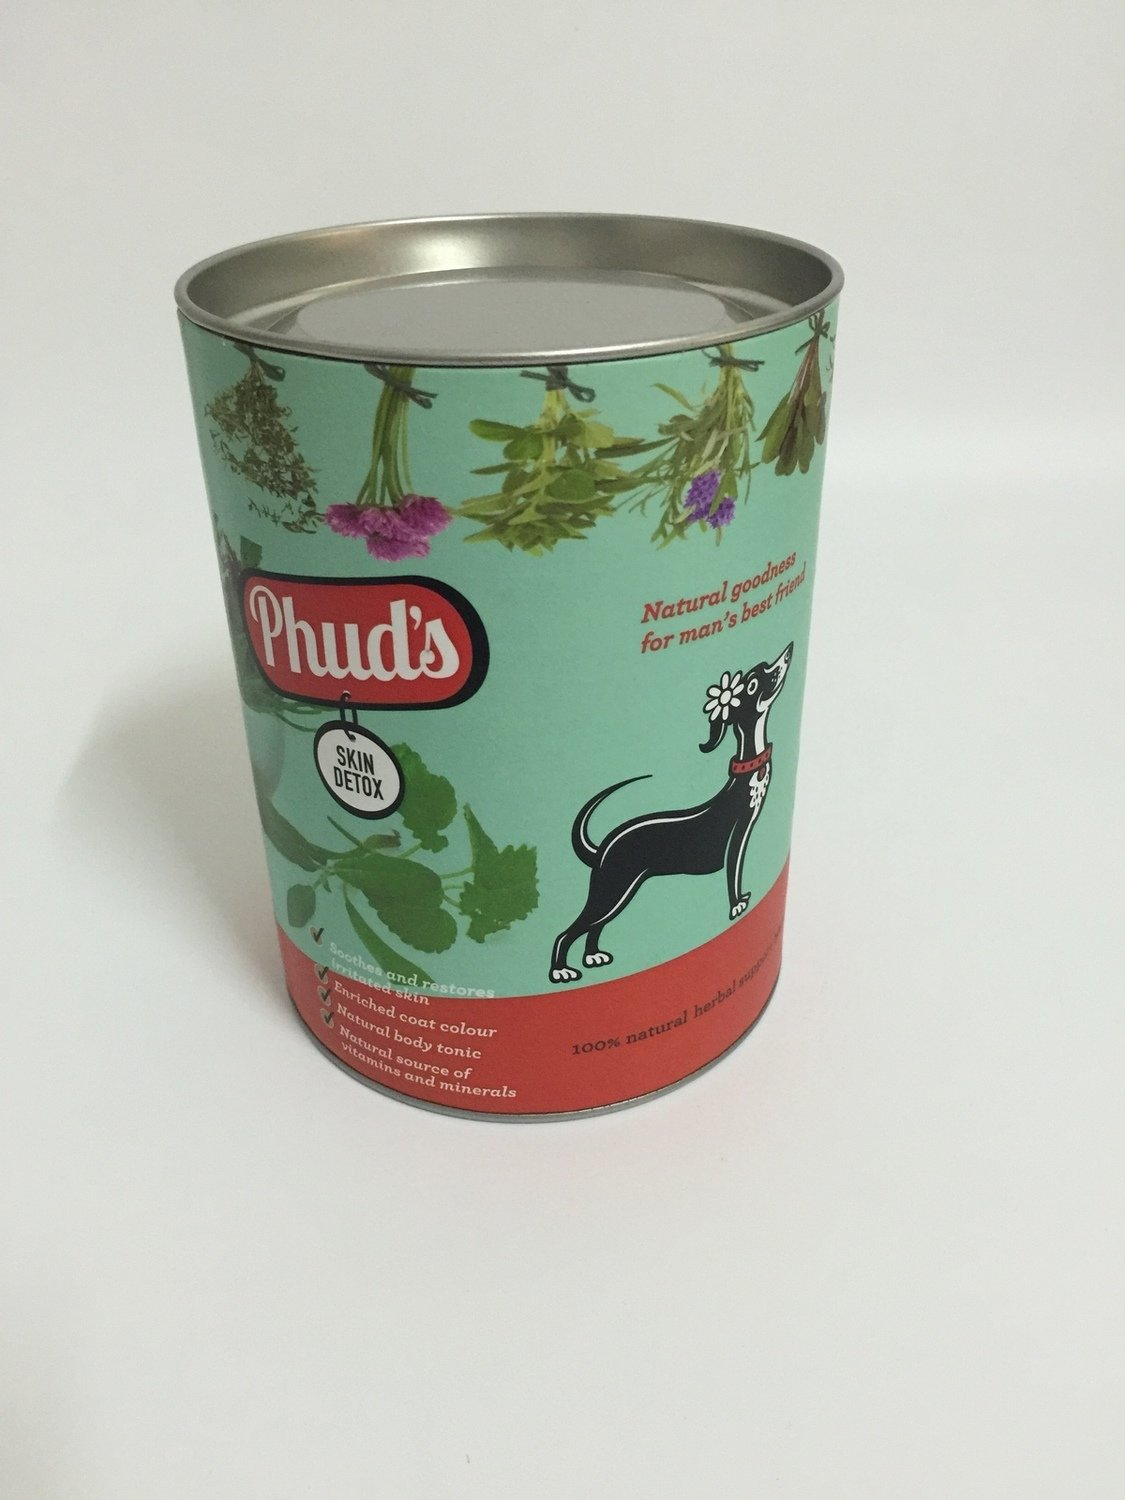 Phuds Skin Detox 200g Natural Internal Aid to Skin Health